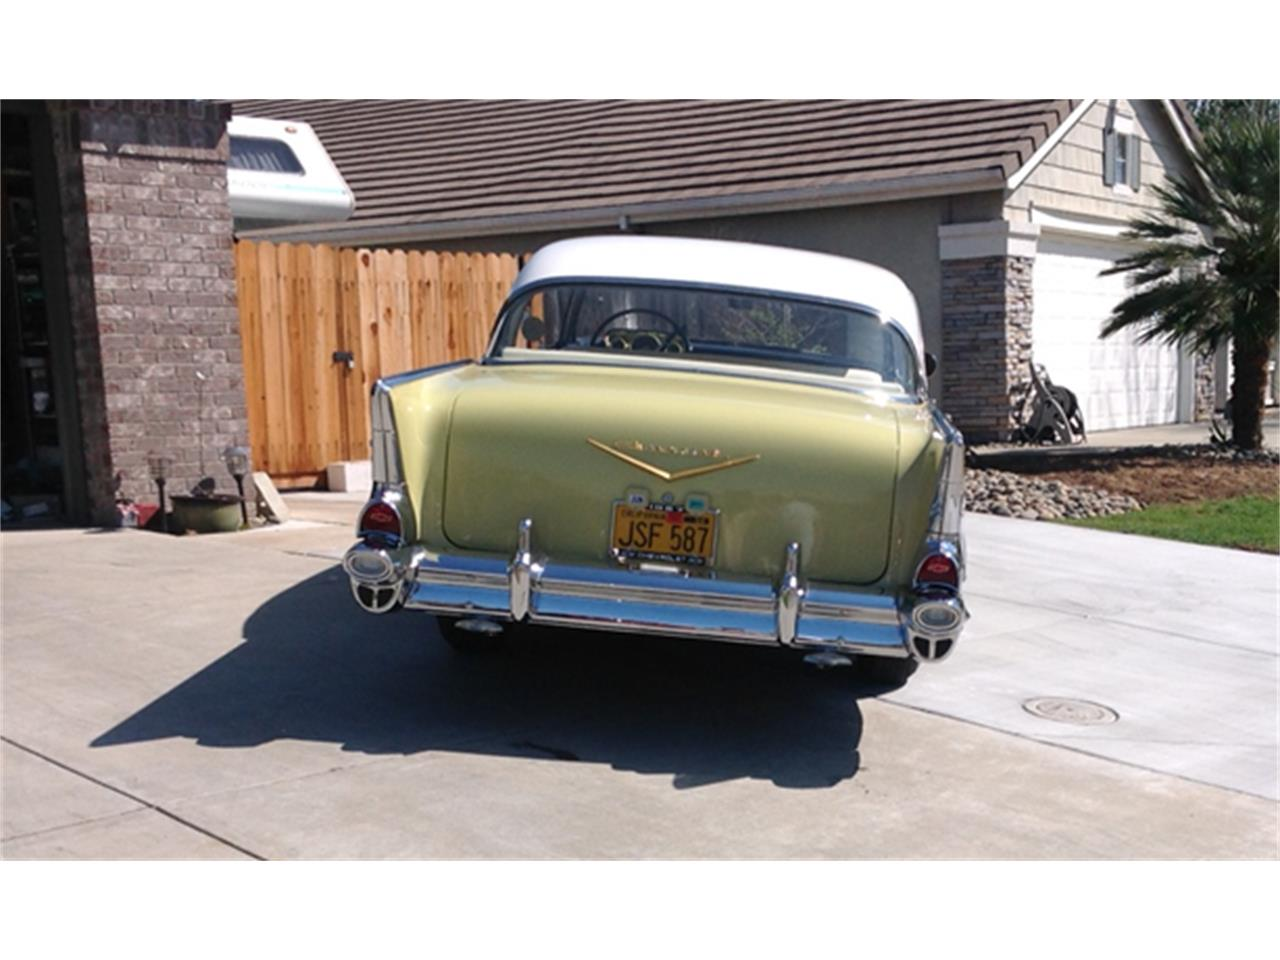 Large Picture of Classic 1957 Chevrolet Bel Air located in California - $23,000.00 Offered by a Private Seller - KVN8